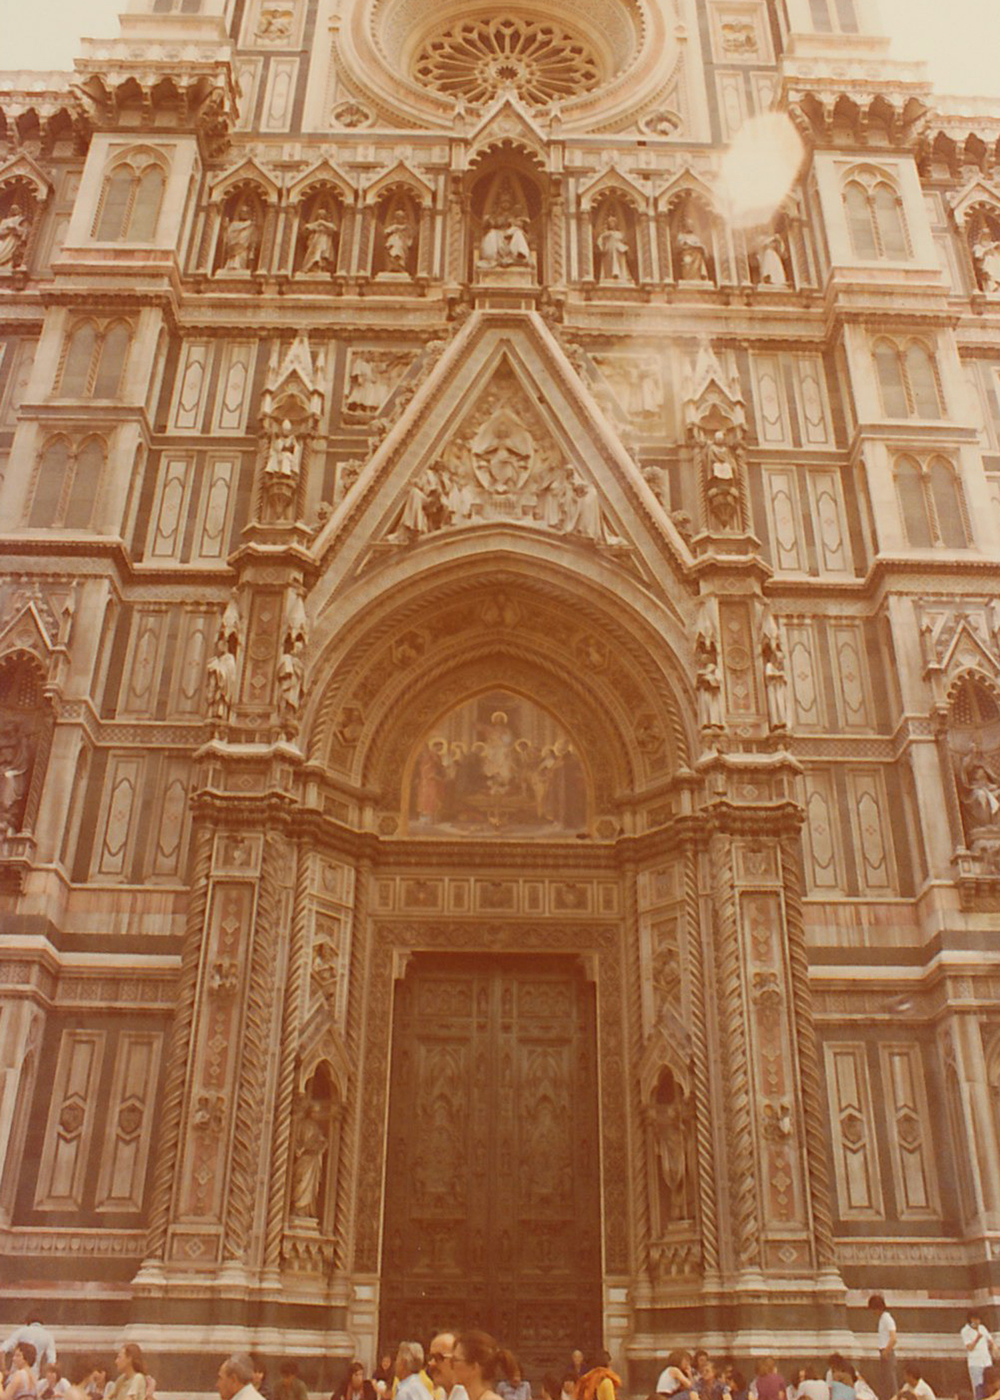 The beautiful Duomo in Florence, Italy.